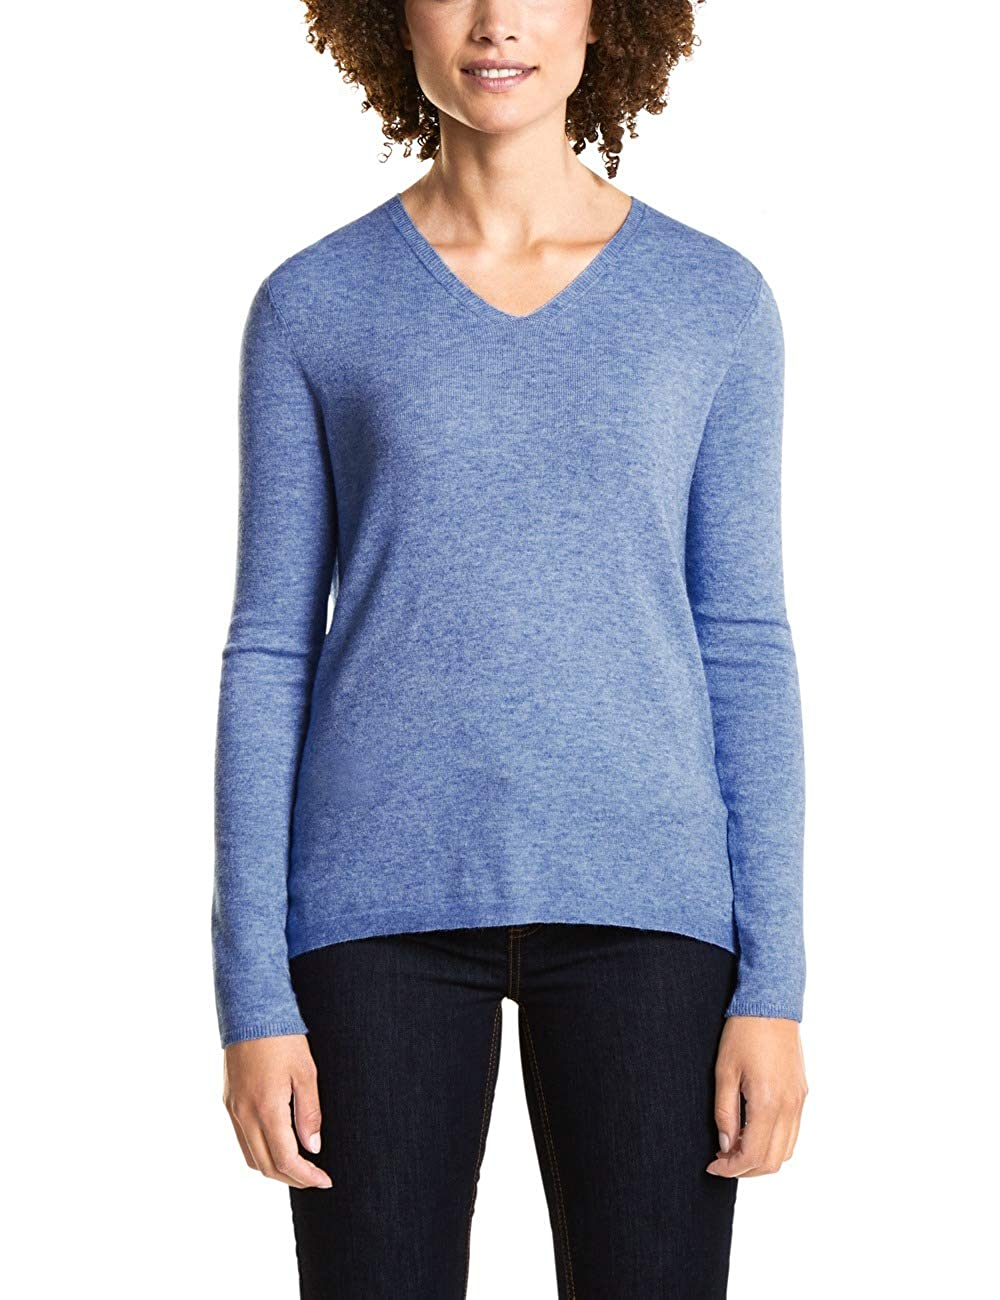 Street One 300657, Jersey para Mujer